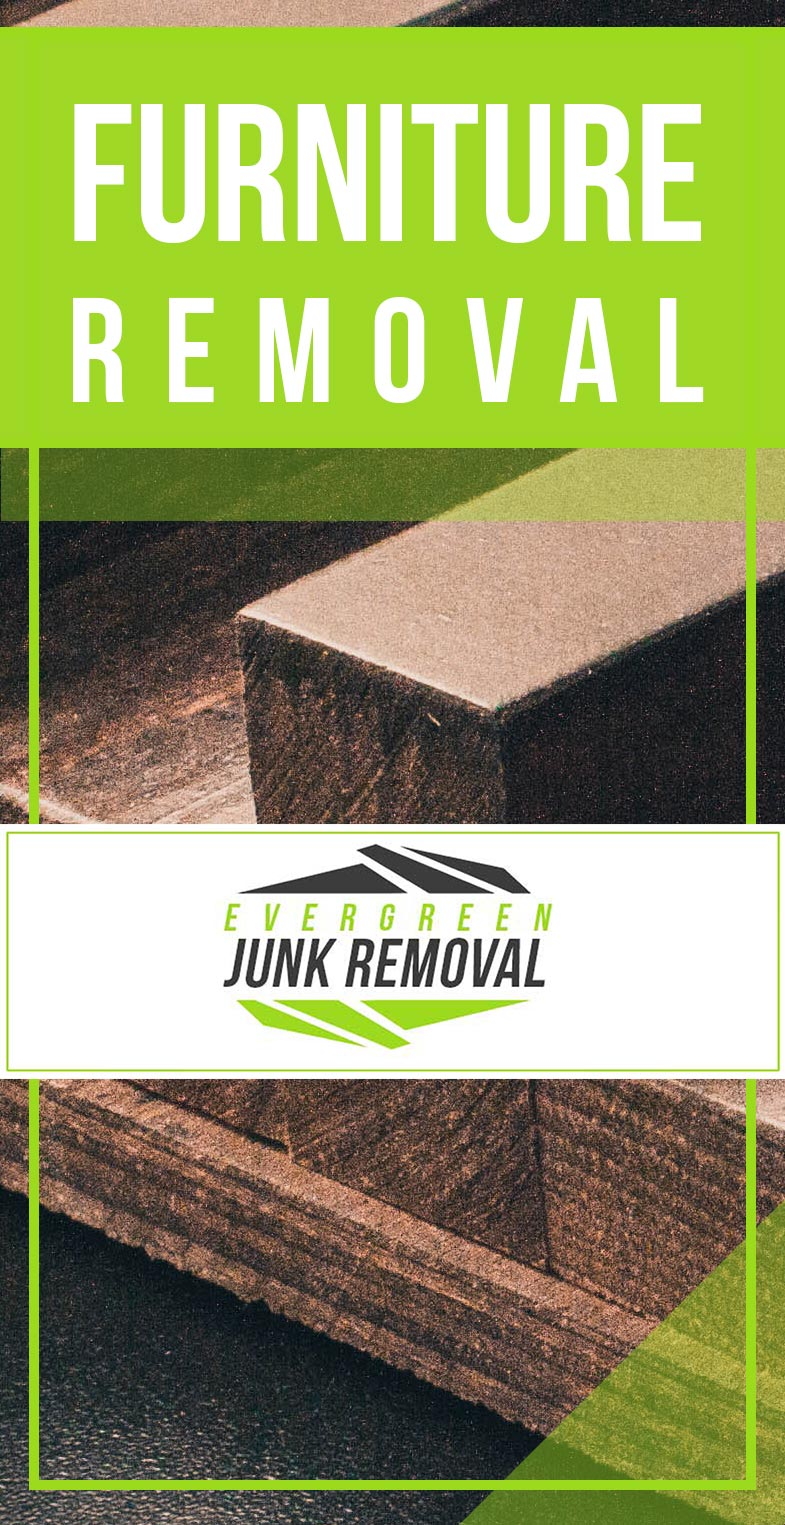 Flat Rock Furniture Removal